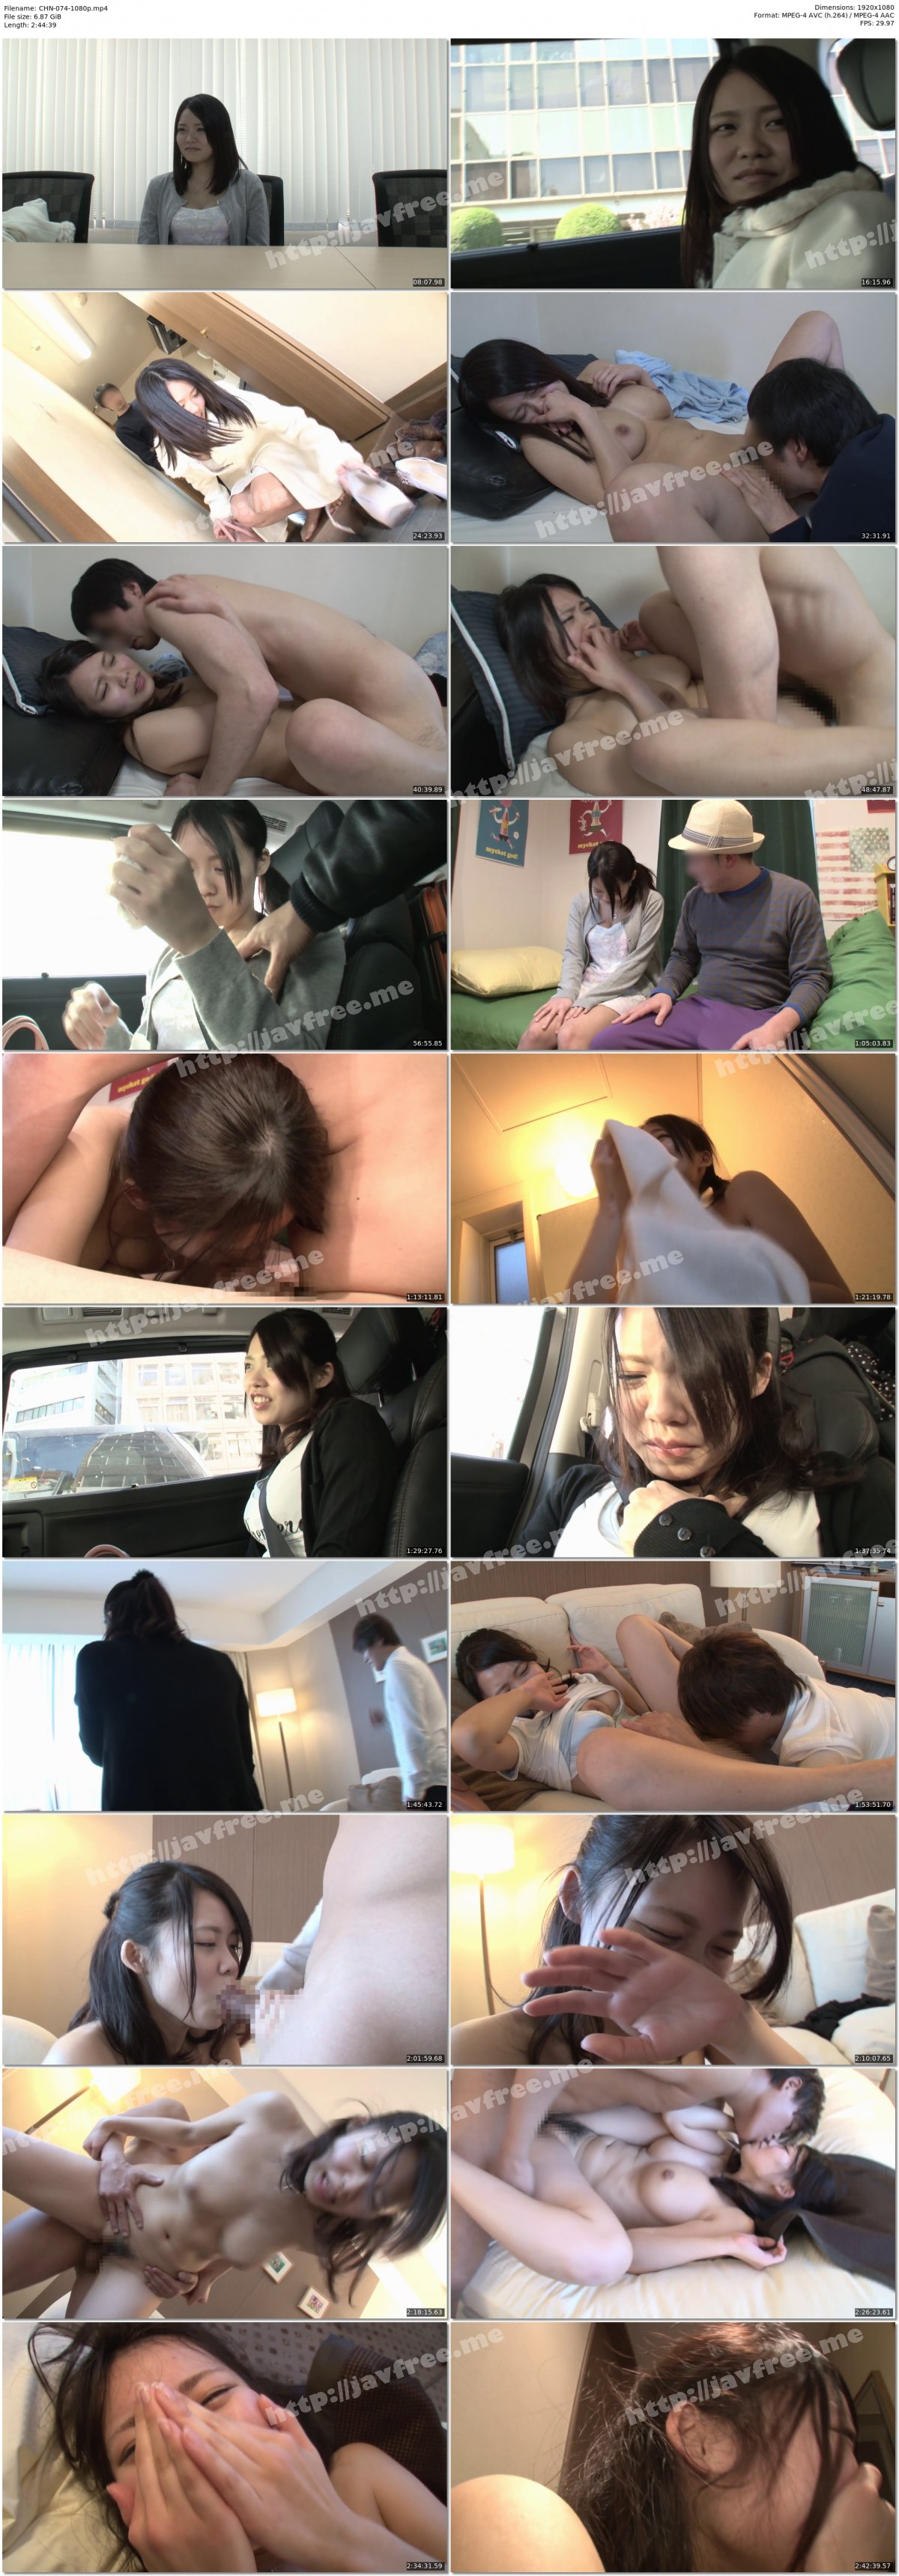 [HD][IDS-003] ザ 夜這い - image CHN-074-1080p on https://javfree.me